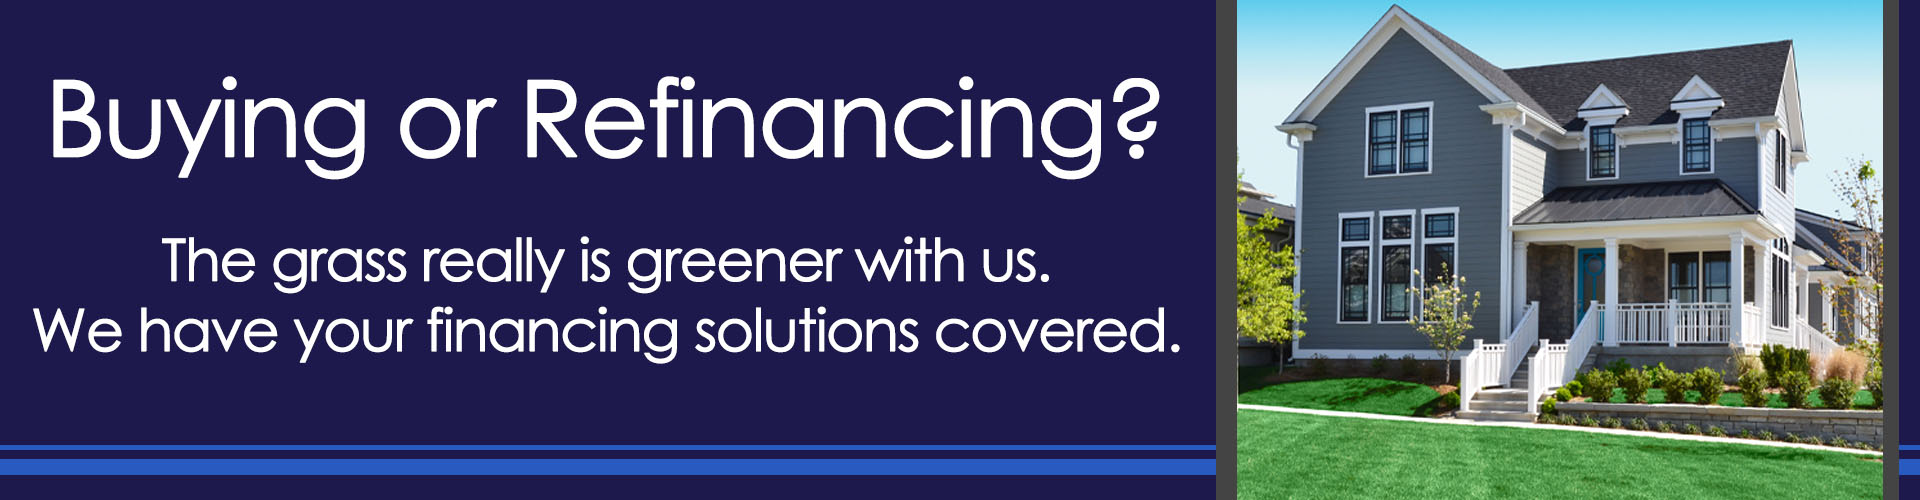 Buying or Refinancing? We have your financing solutions covered.